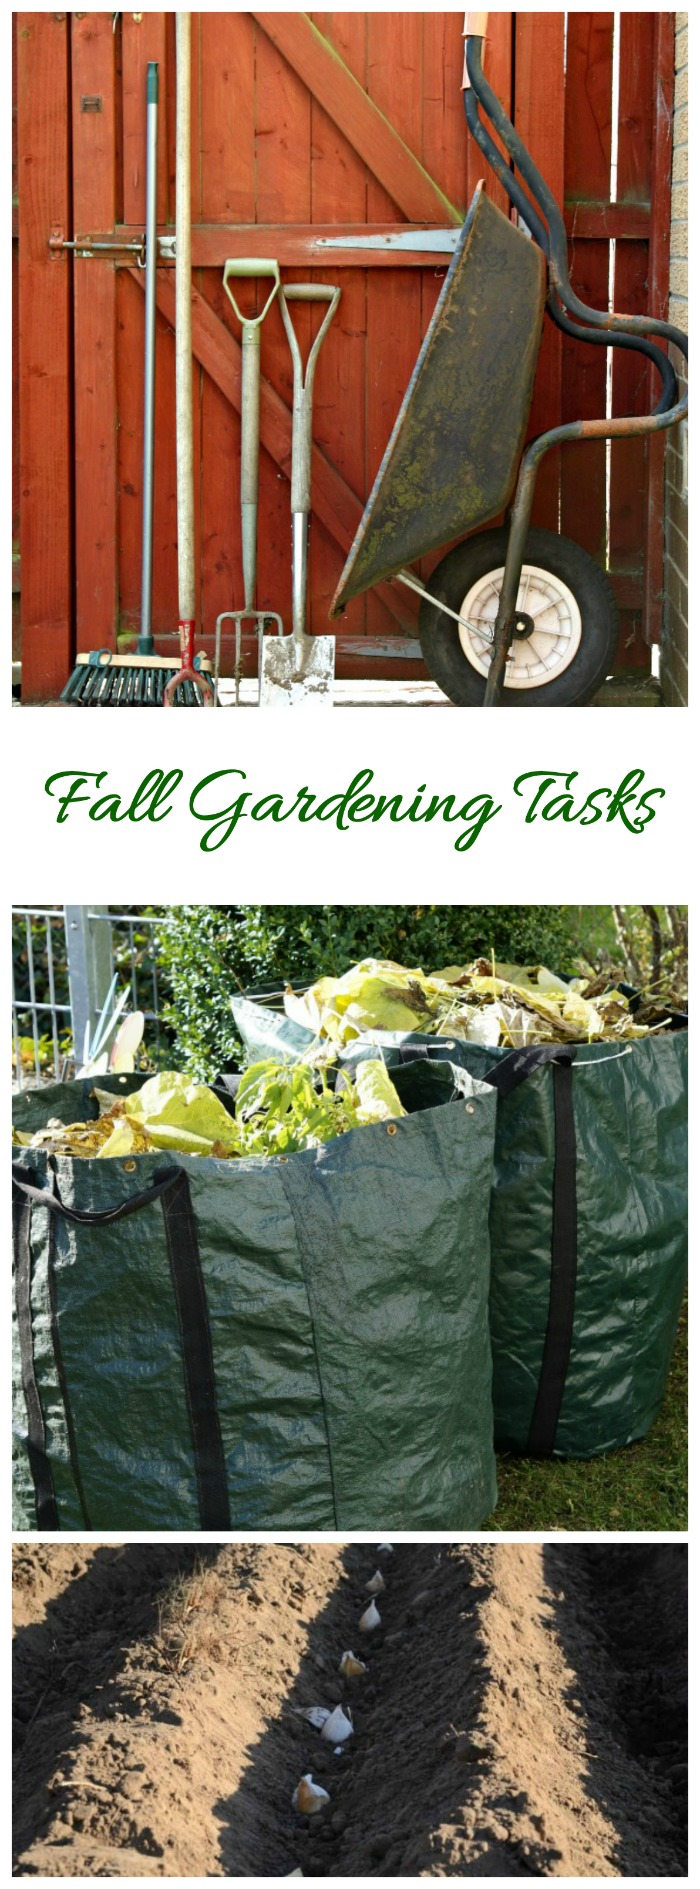 Do things on this fall gardening checklist now and you'll find things a lot easier next spring. #fallgardening #gardenchecklist #fallgarden